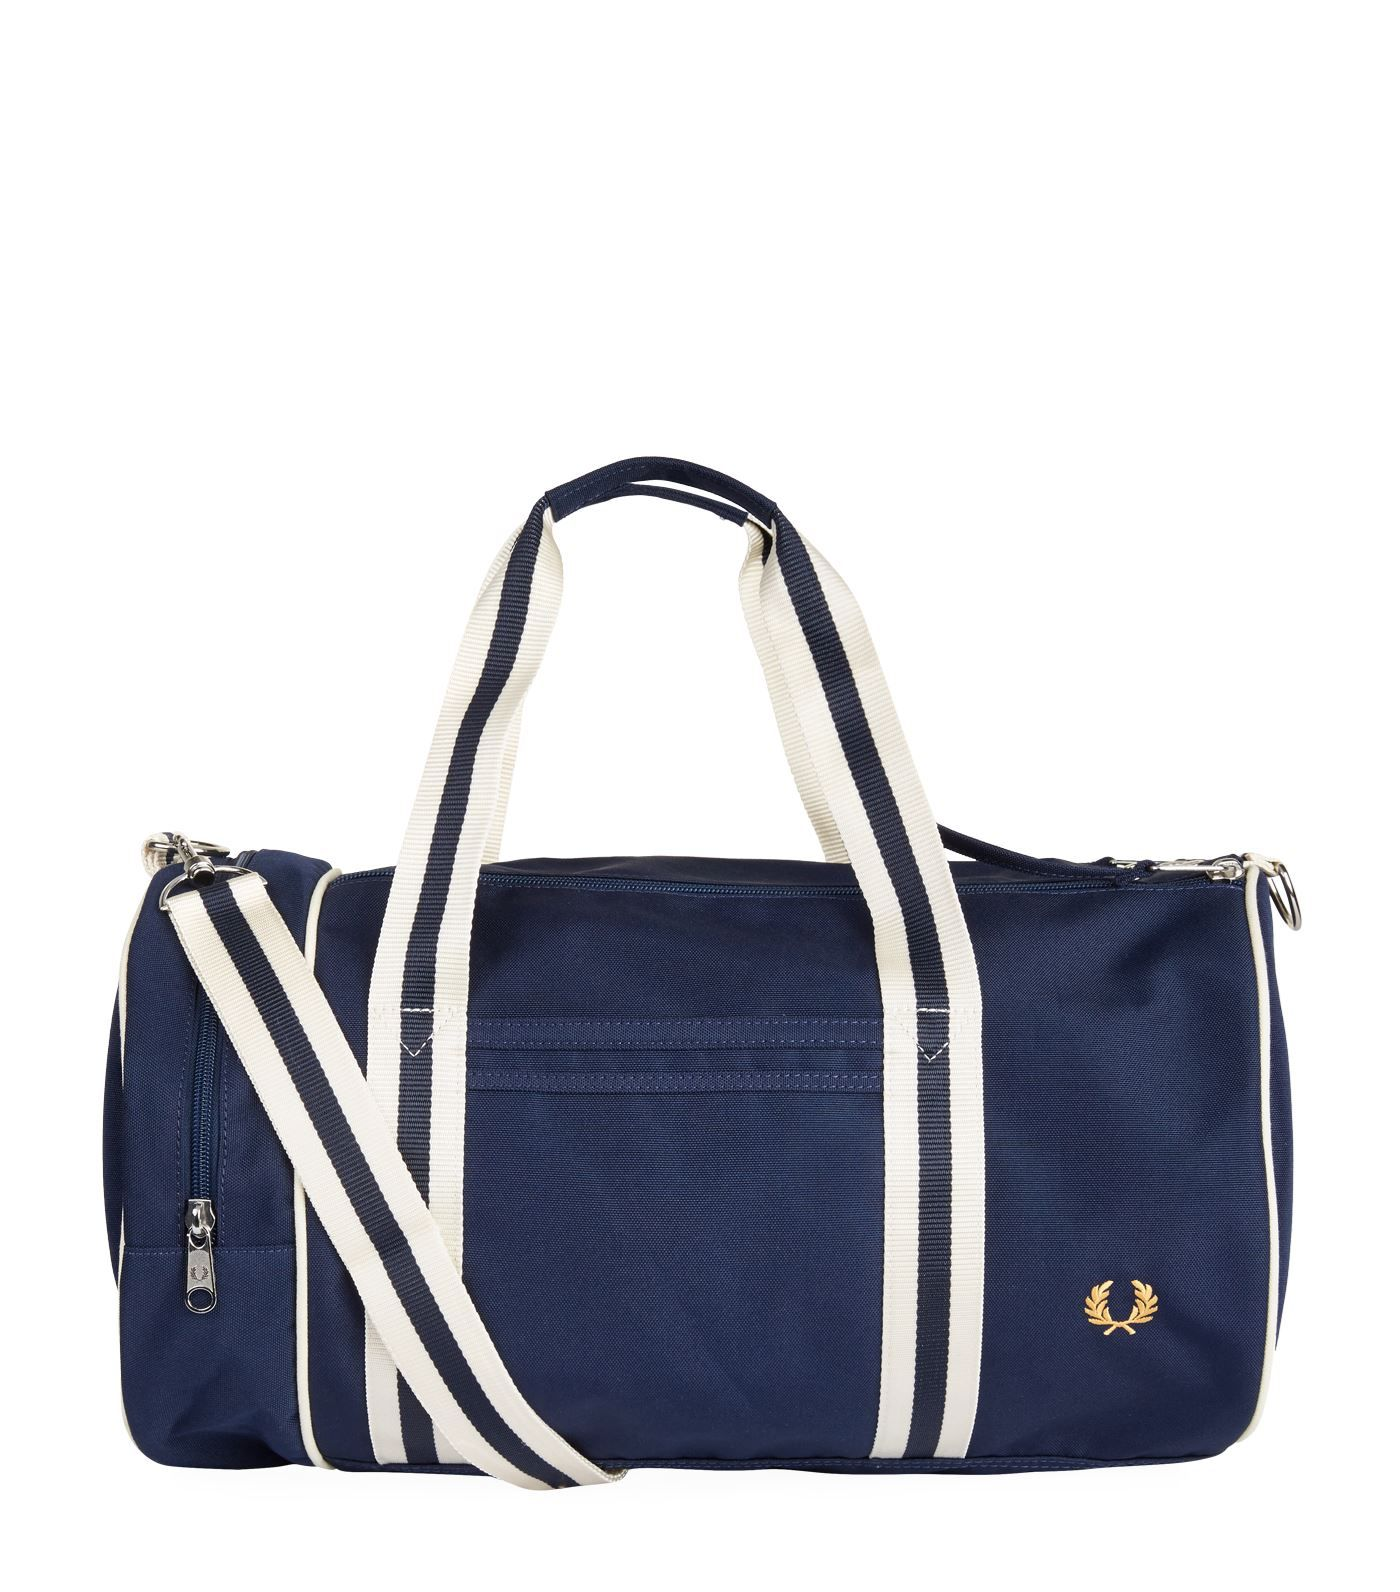 f7e9ba4a2e9cb FRED PERRY TWIN TIPPED BARREL BAG.  fredperry  bags  shoulder bags  hand  bags